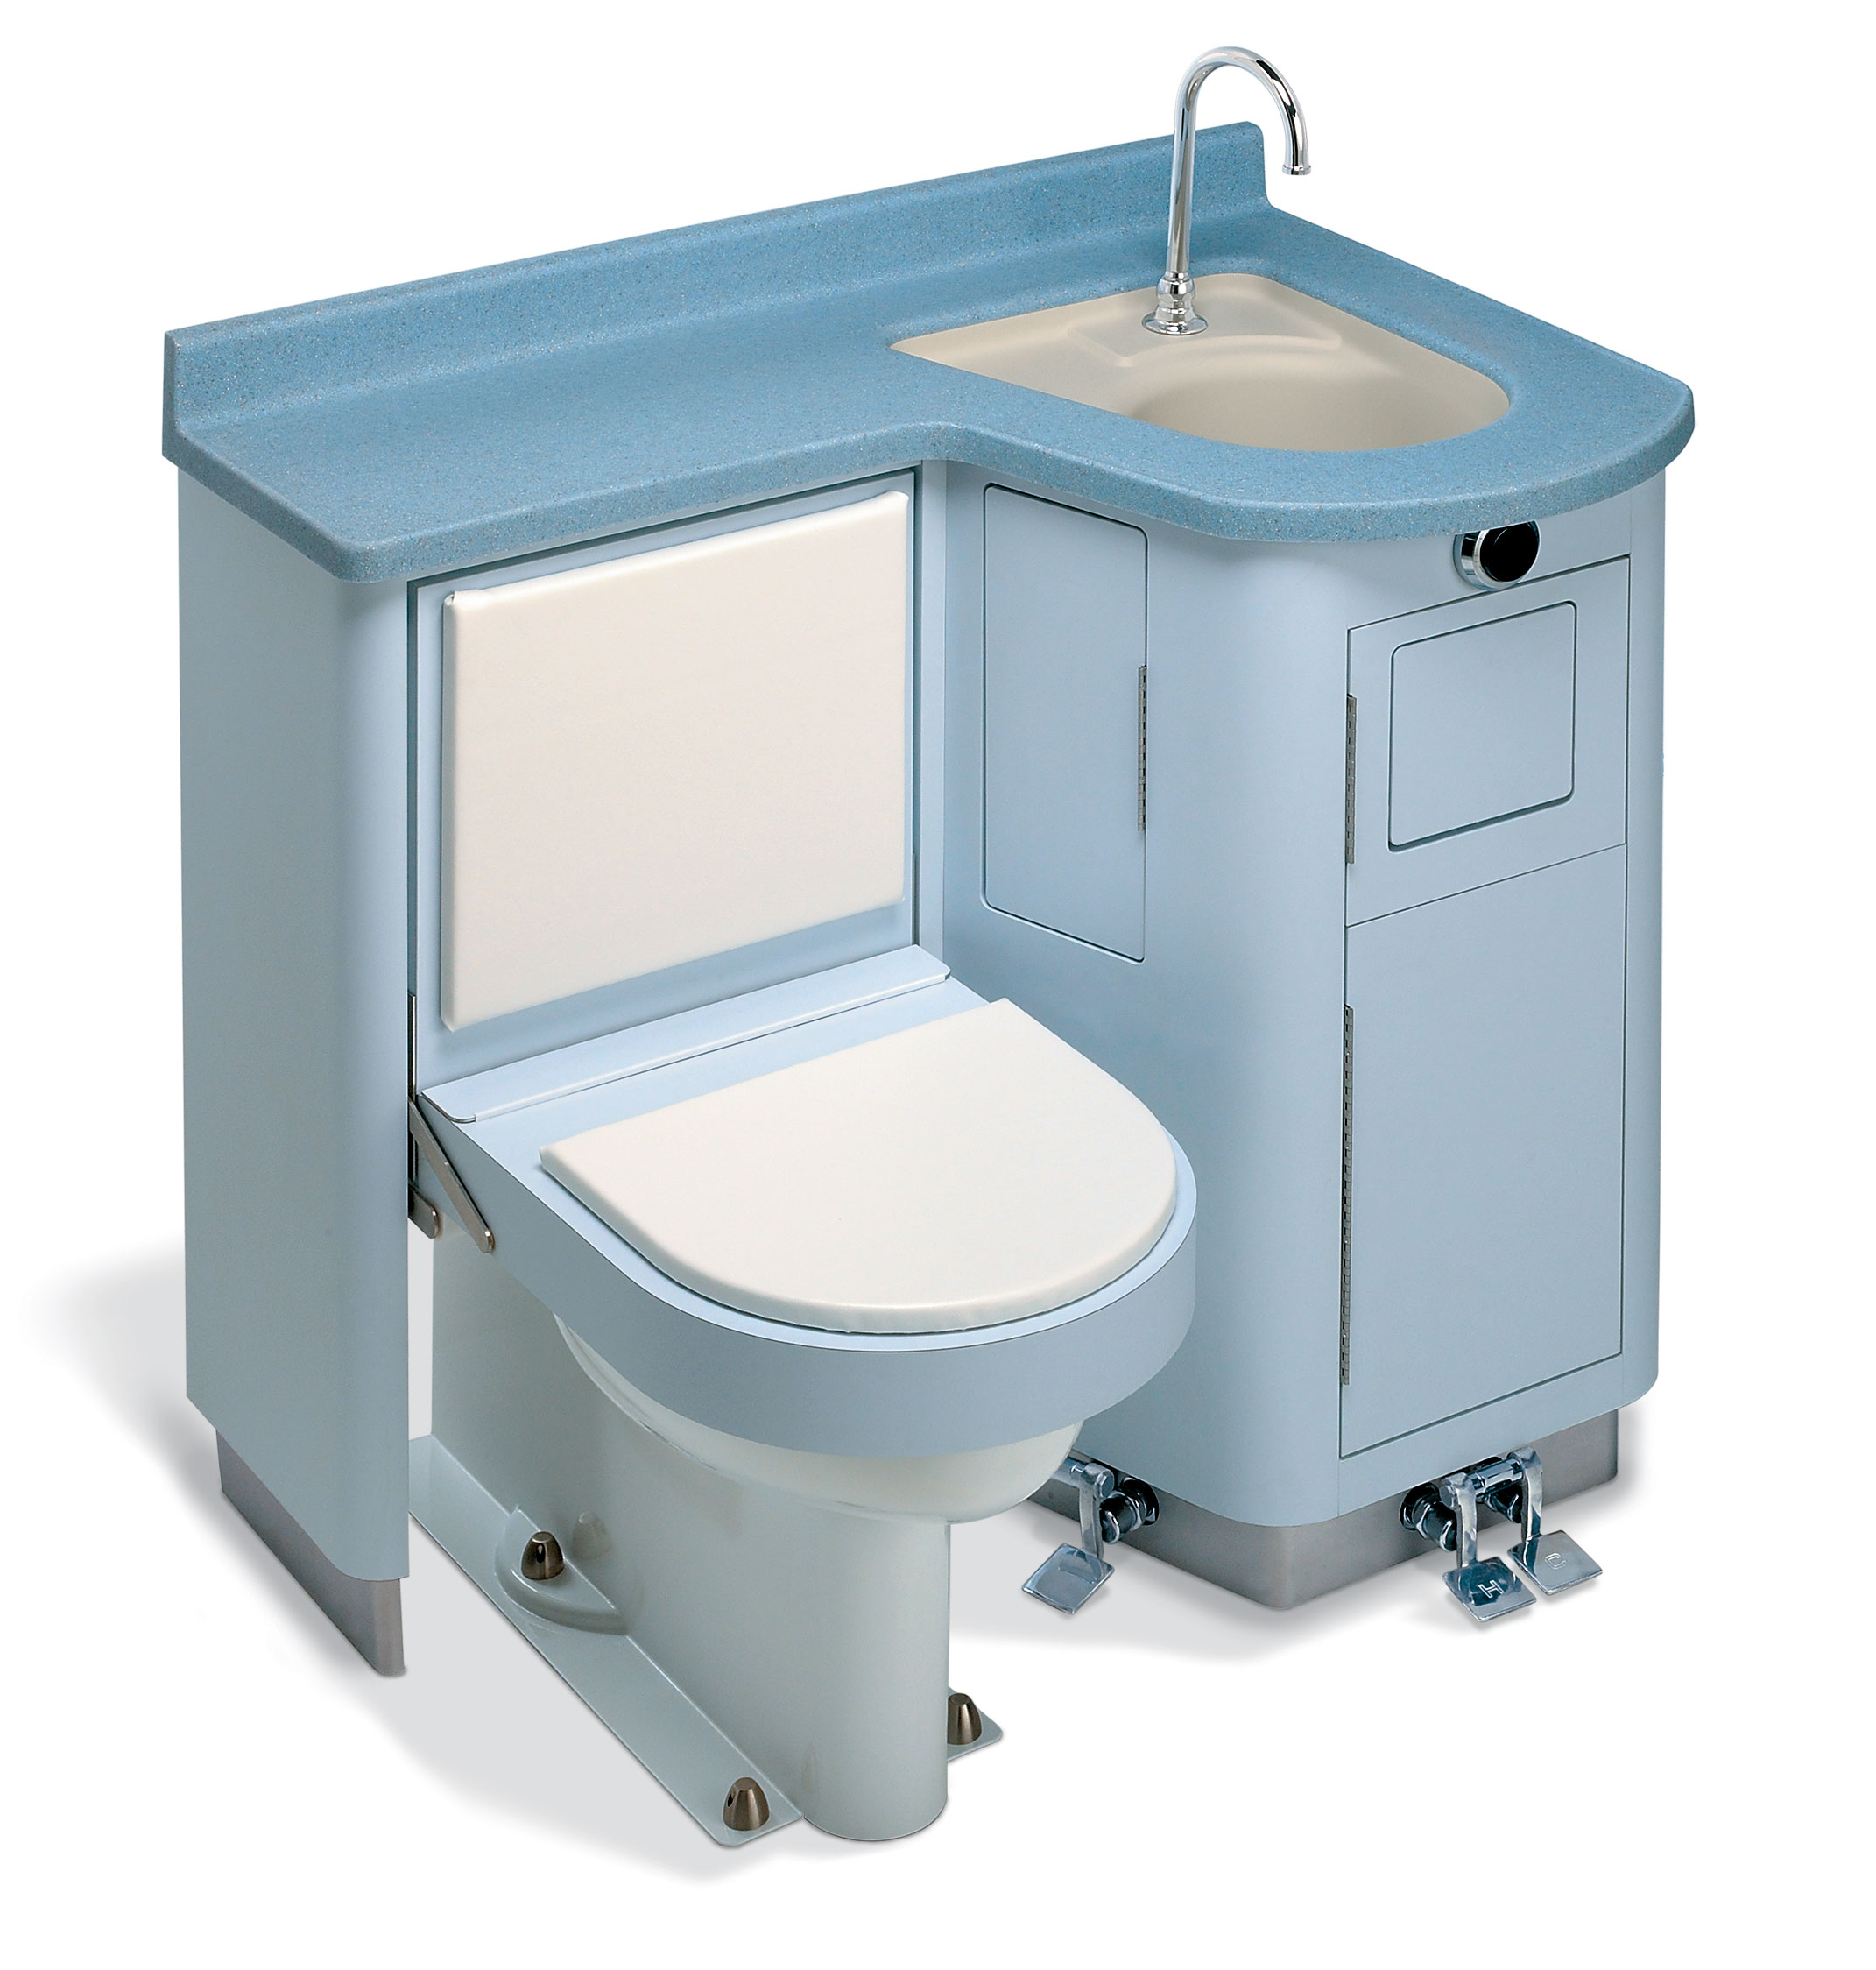 lavatory, fixed water closet, bed pan washer comby - bradley